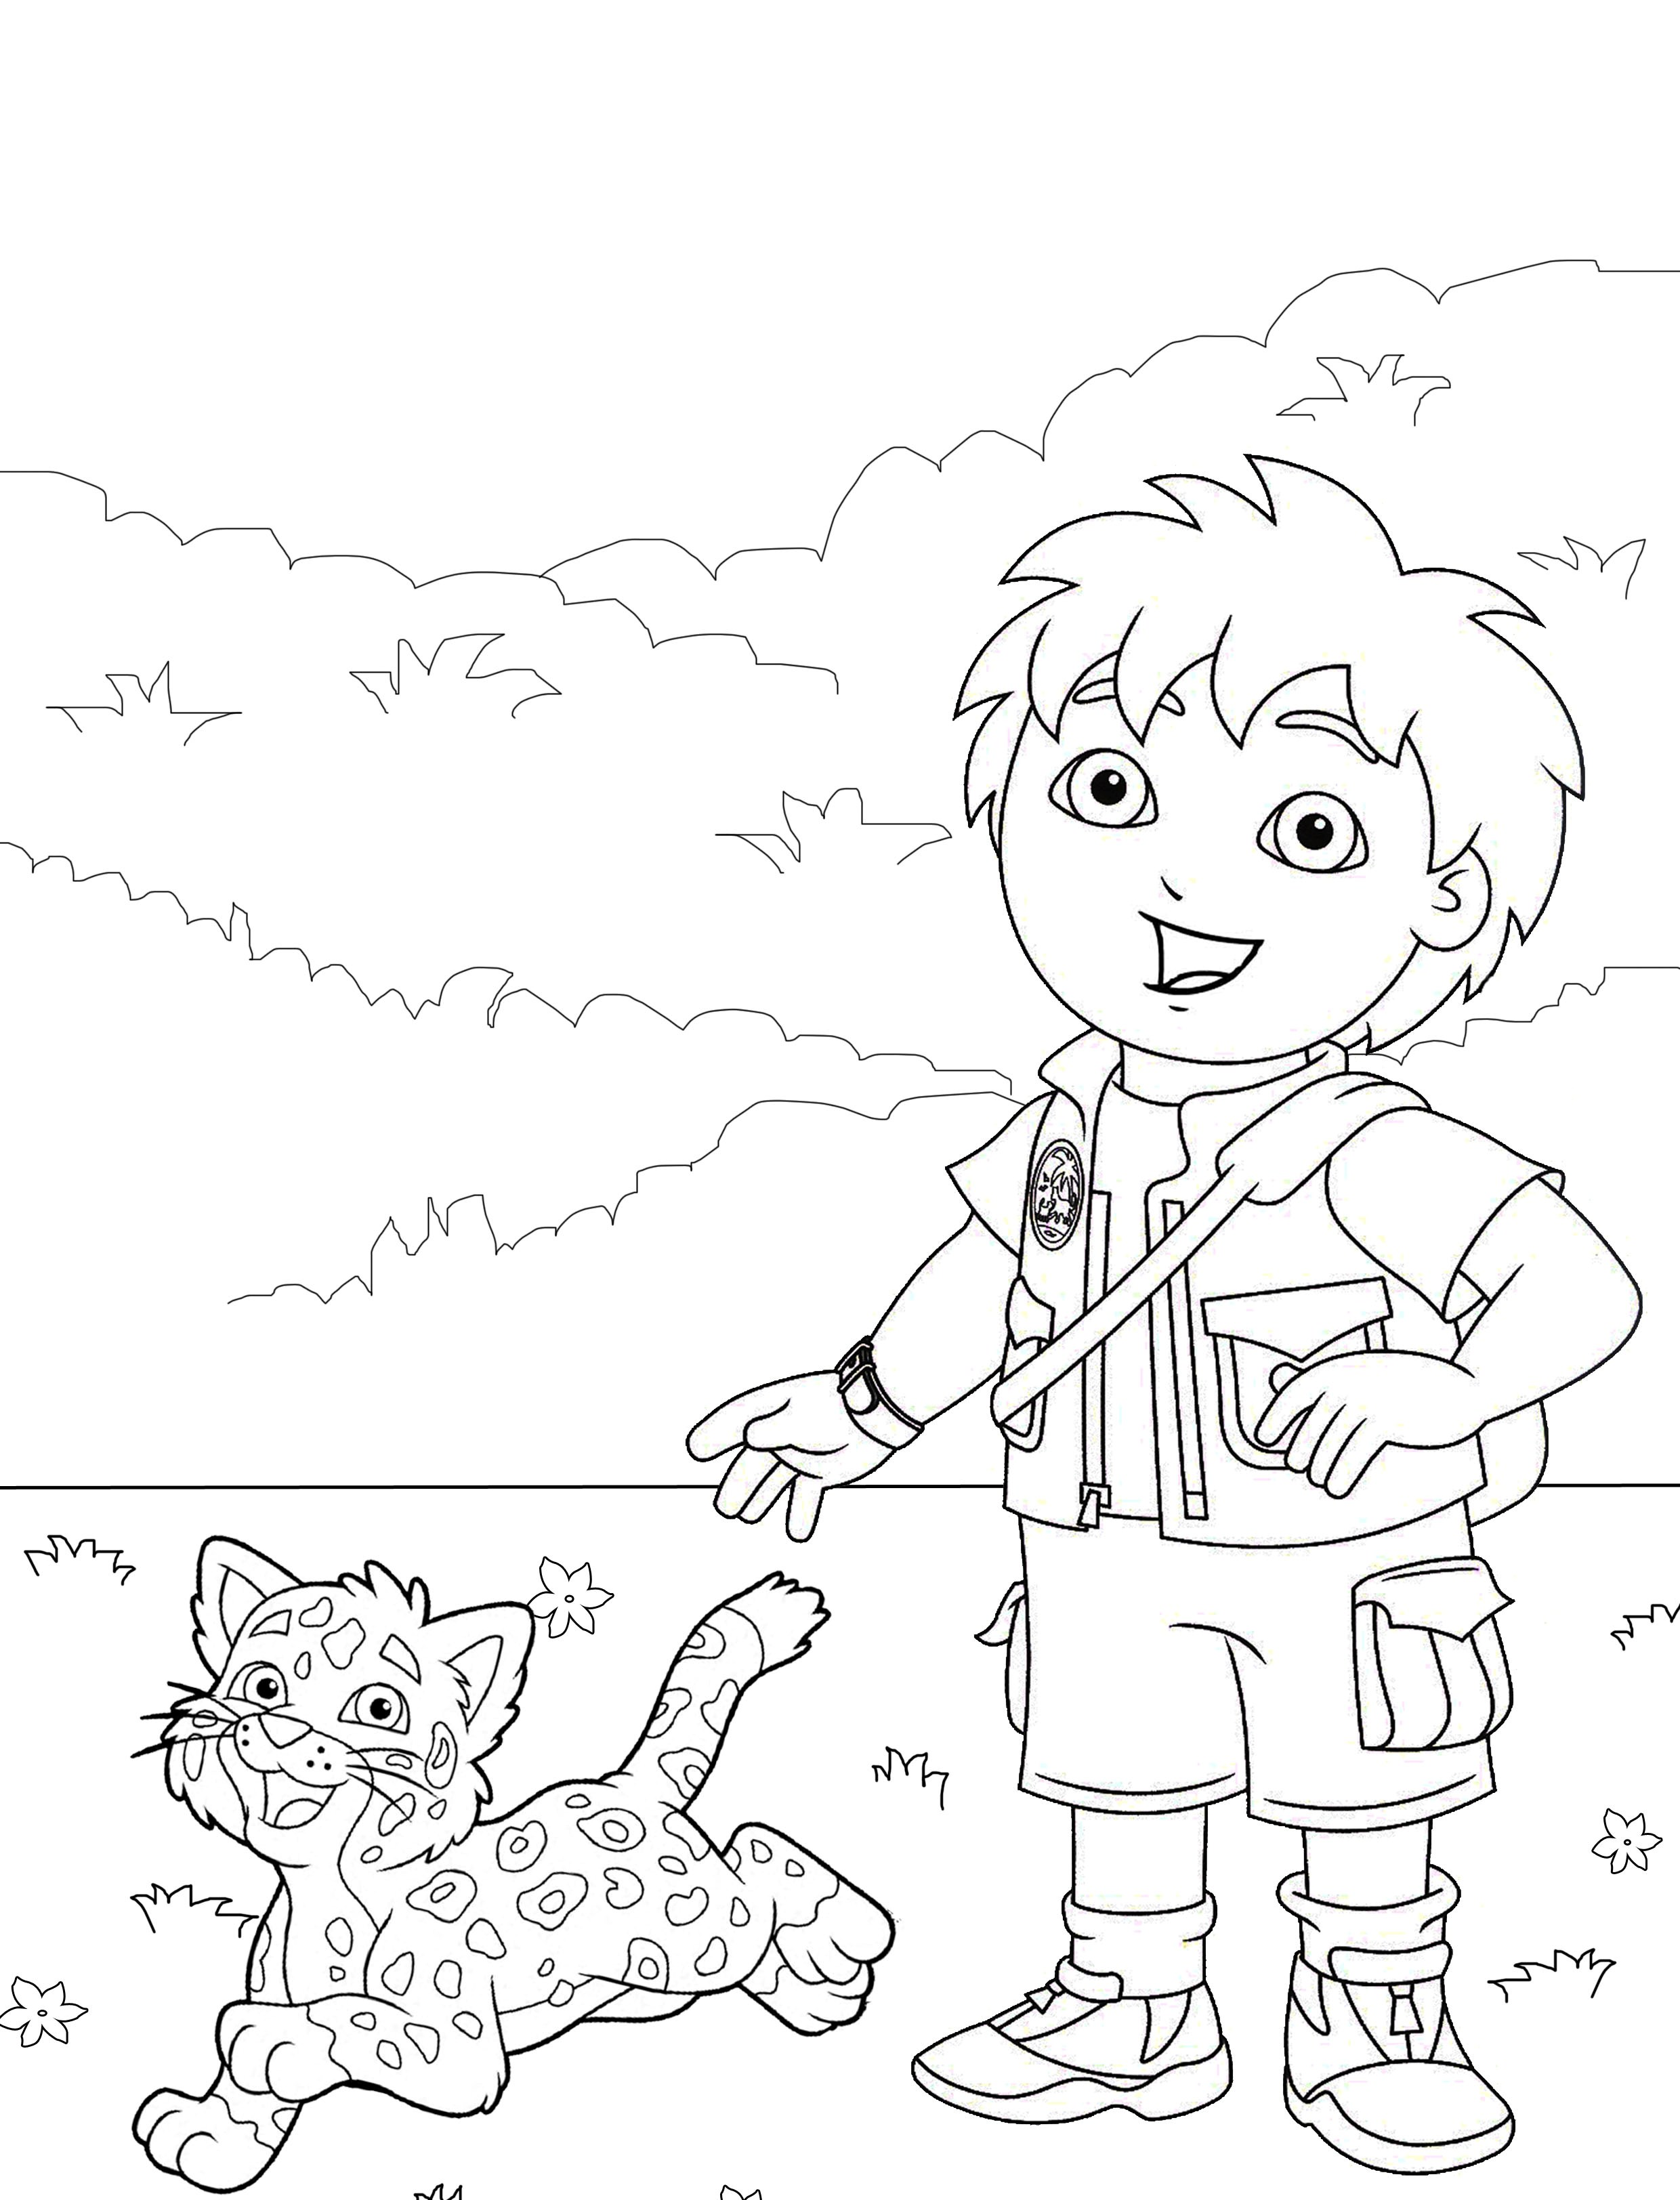 Positive Behavior Coloring Pages Coloring Coloring Pages